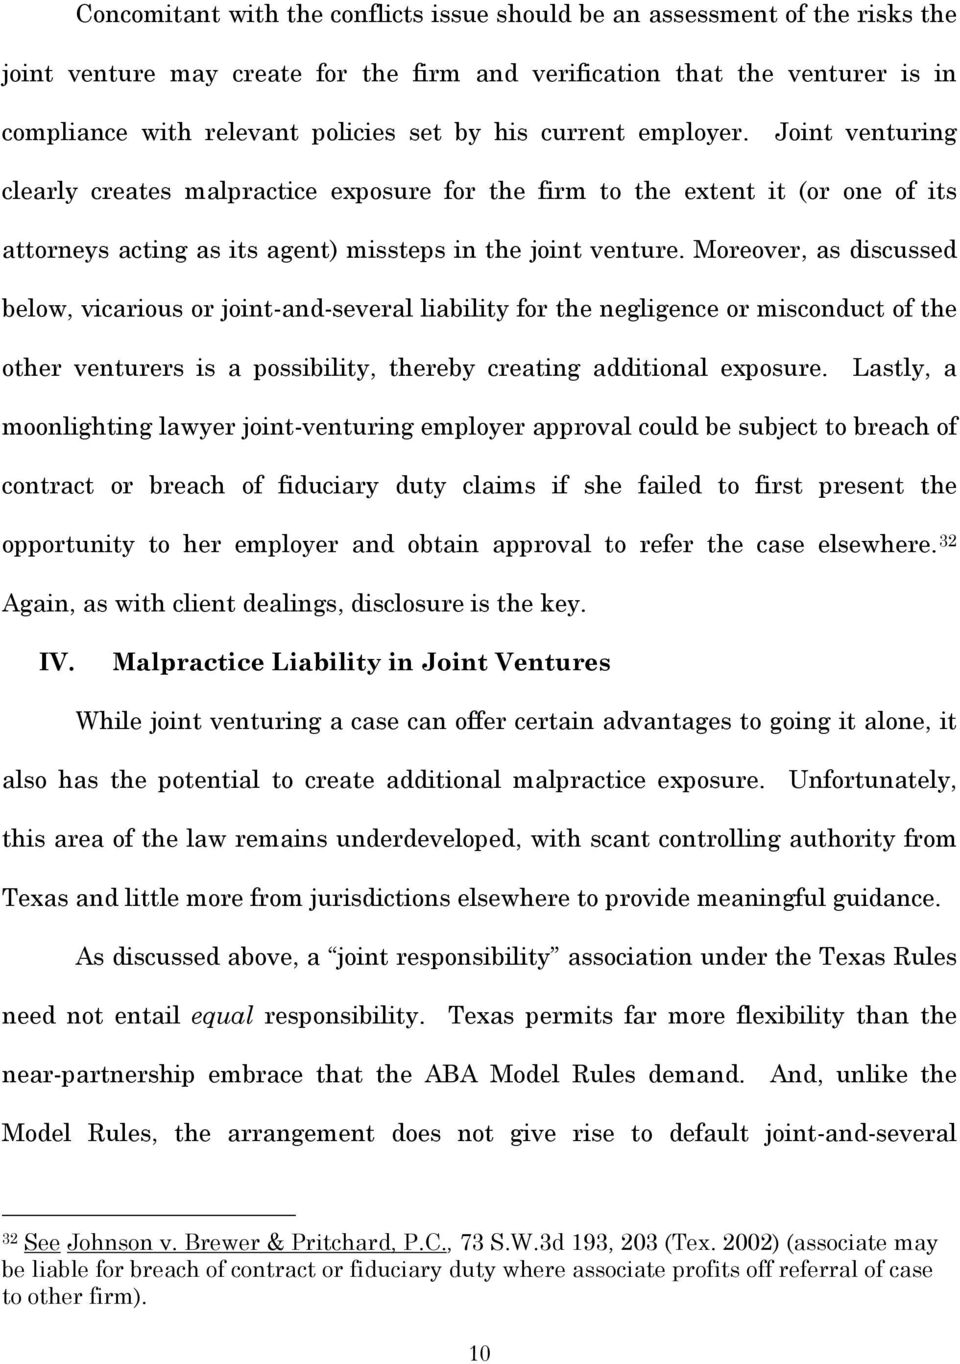 Moreover, as discussed below, vicarious or joint-and-several liability for the negligence or misconduct of the other venturers is a possibility, thereby creating additional exposure.